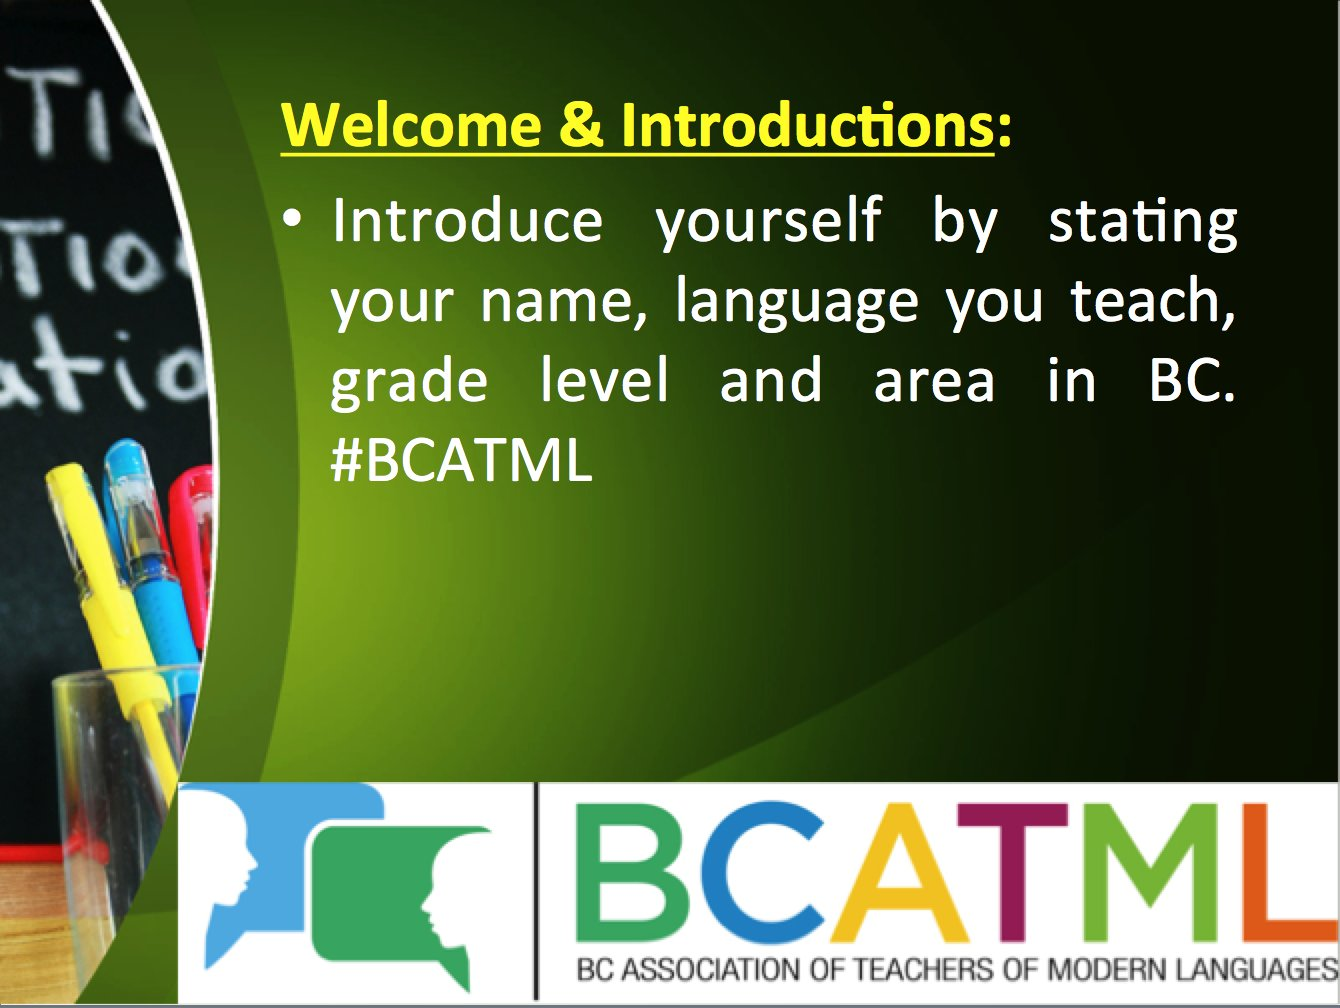 Introduce yourself by stating your name, language you teach, grade level and area in BC. #BCATML https://t.co/OujQVuRibh